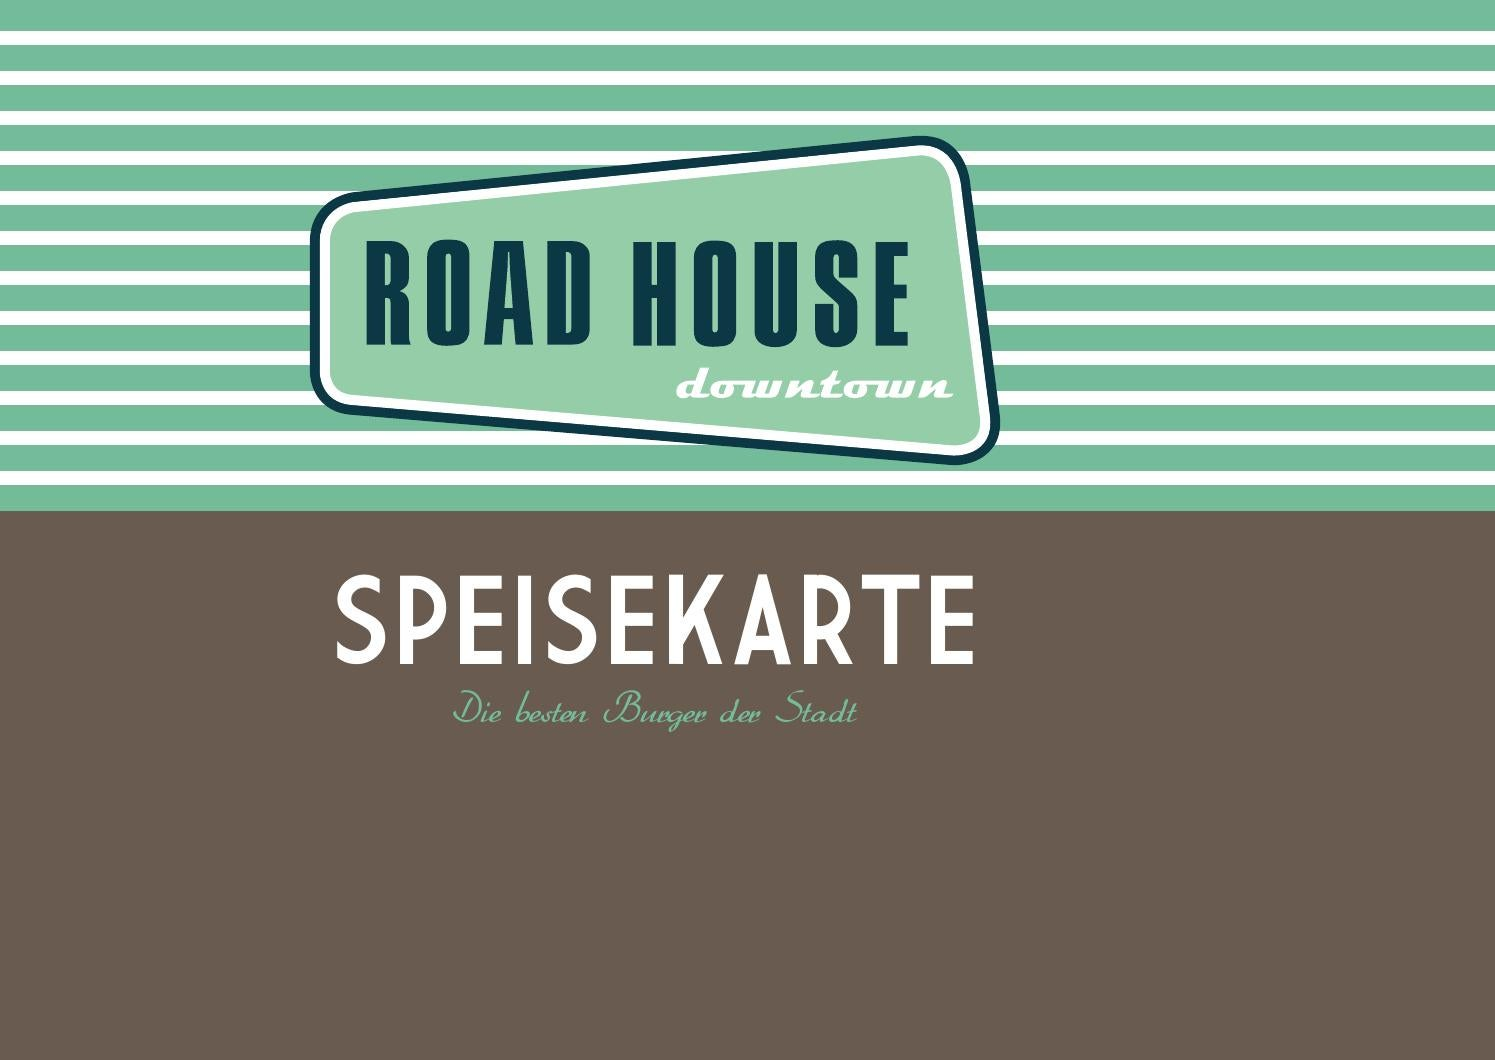 Amerikanische Diner Küche Speisekarte Roadhouse Downtown Web By Road House Diner Issuu